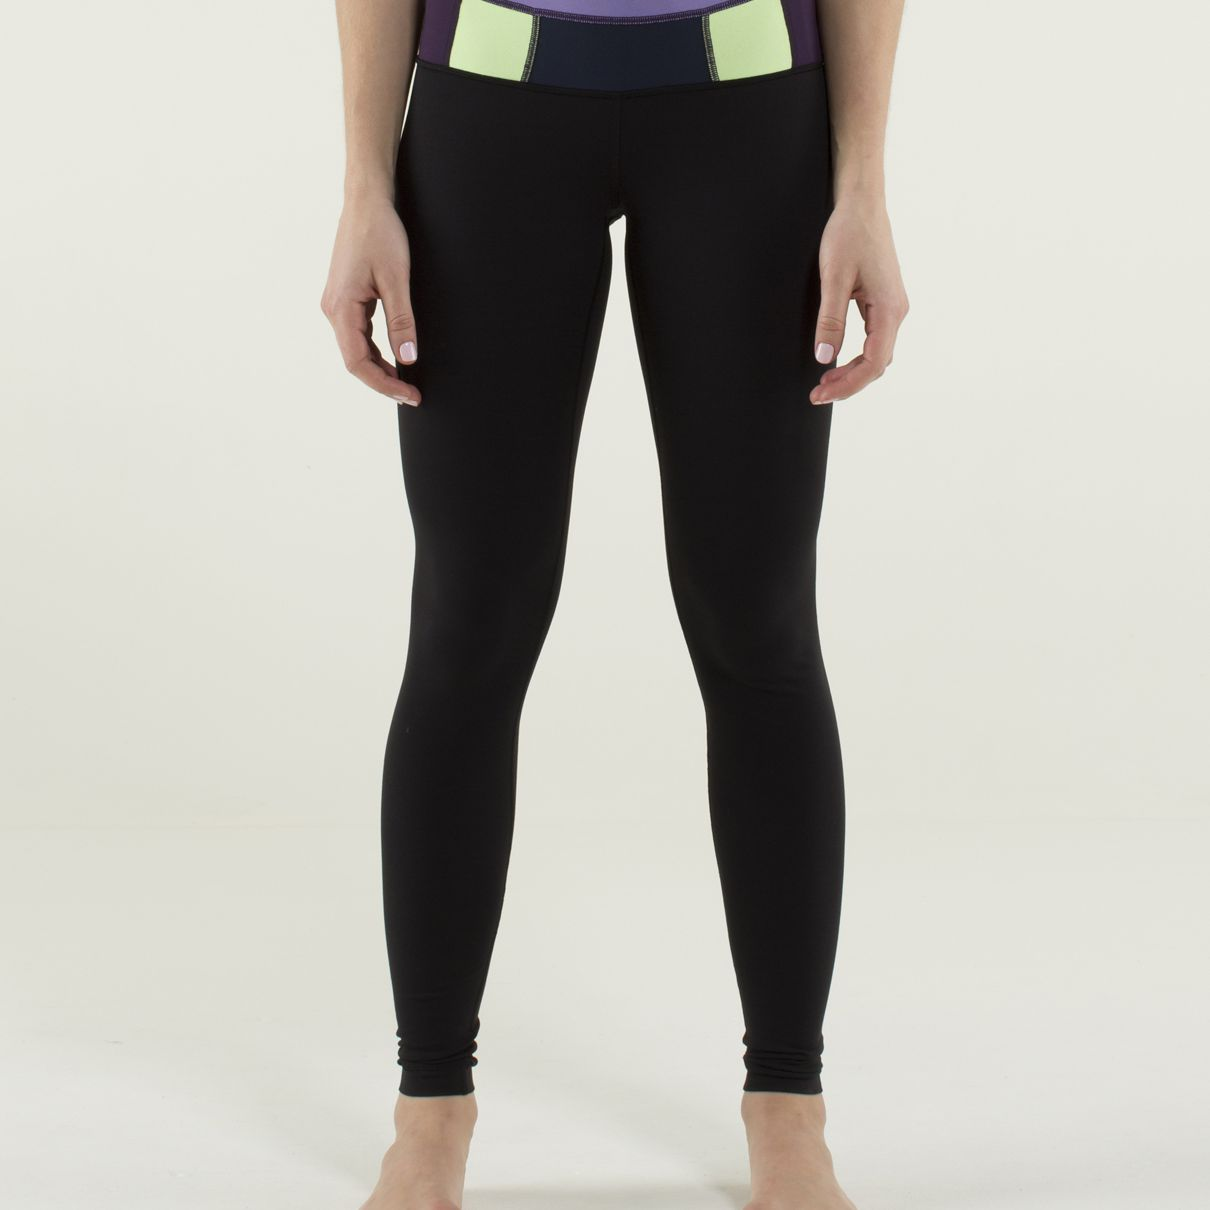 The 10 Best Pairs Of Basic Yoga Pants To Buy In 2019